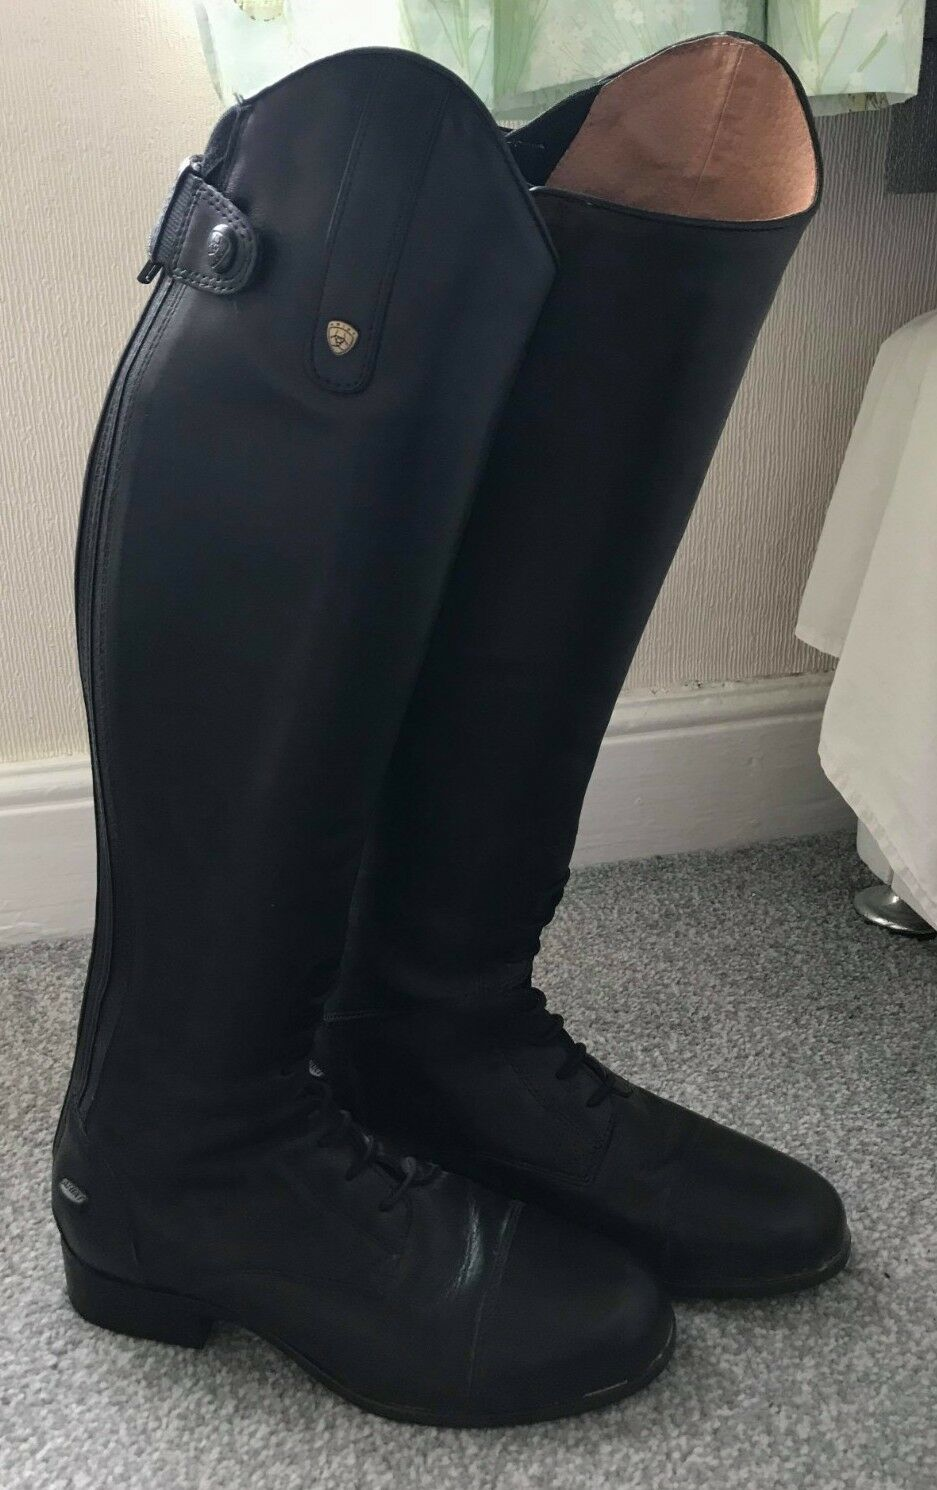 Ariat Heritage Contour II Boots Size 5.5